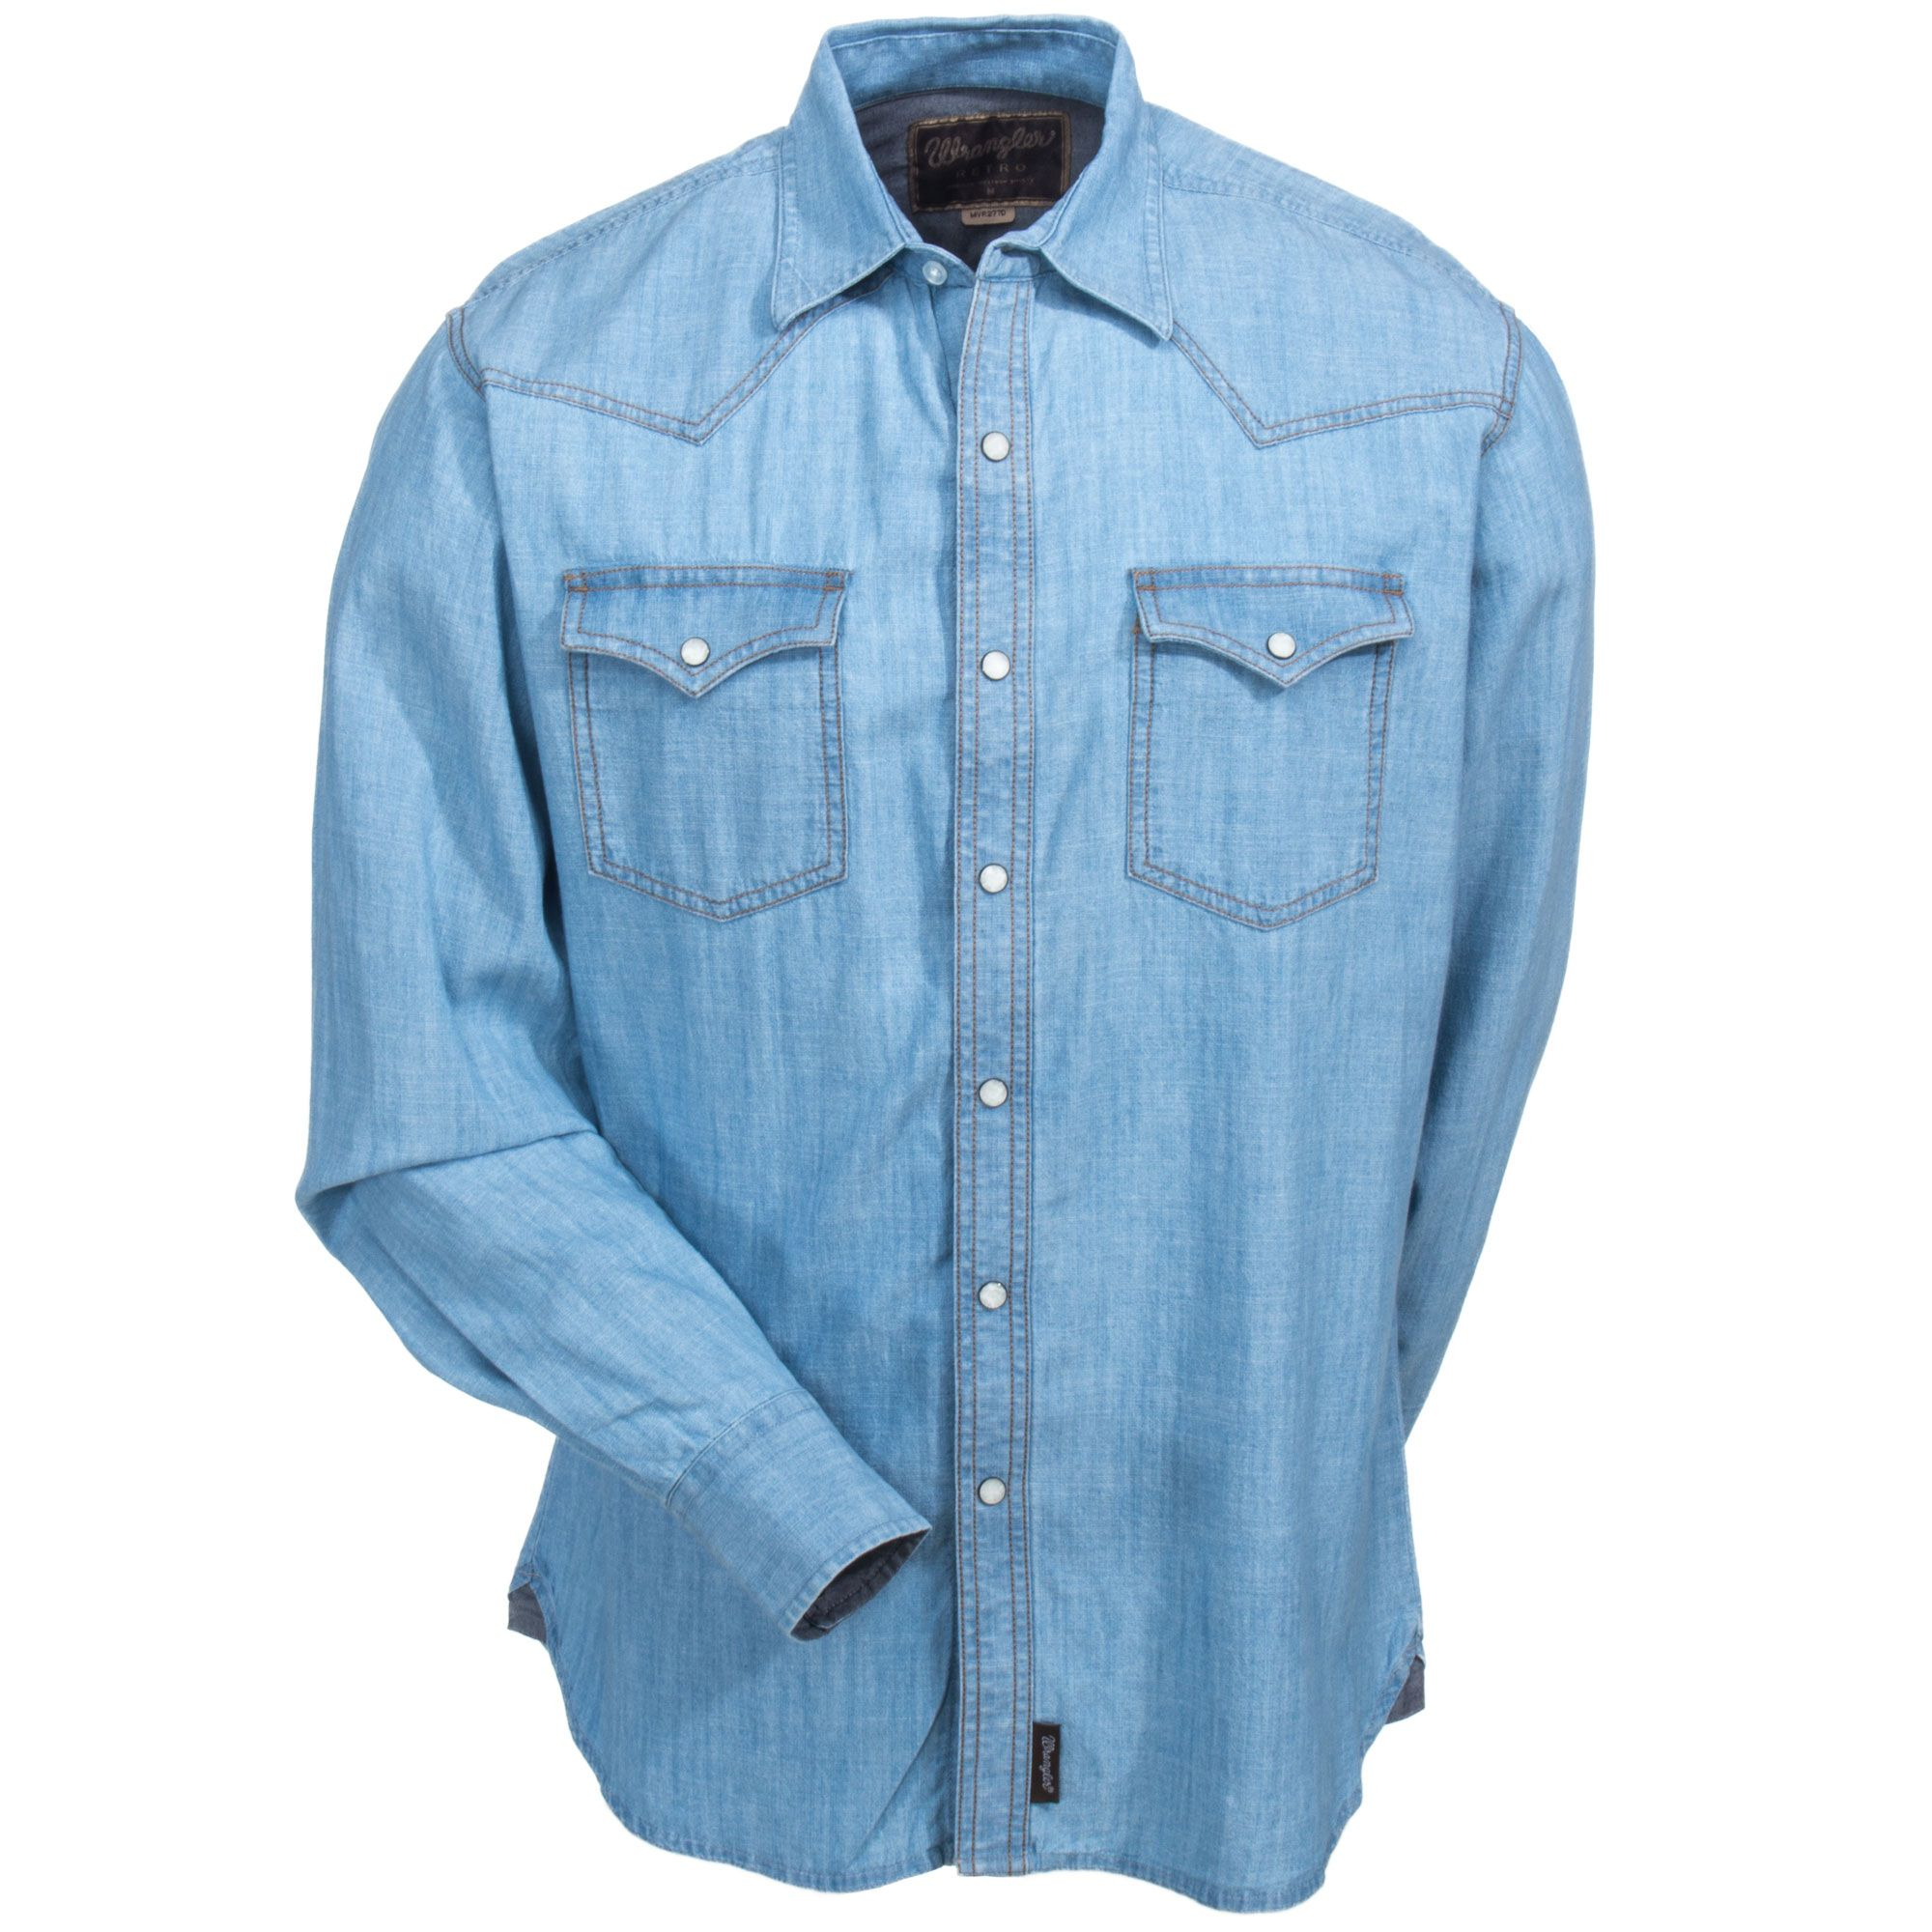 Wrangler Men's MVR277D Long Sleeve Retro Solid Light Indigo Western Shirt